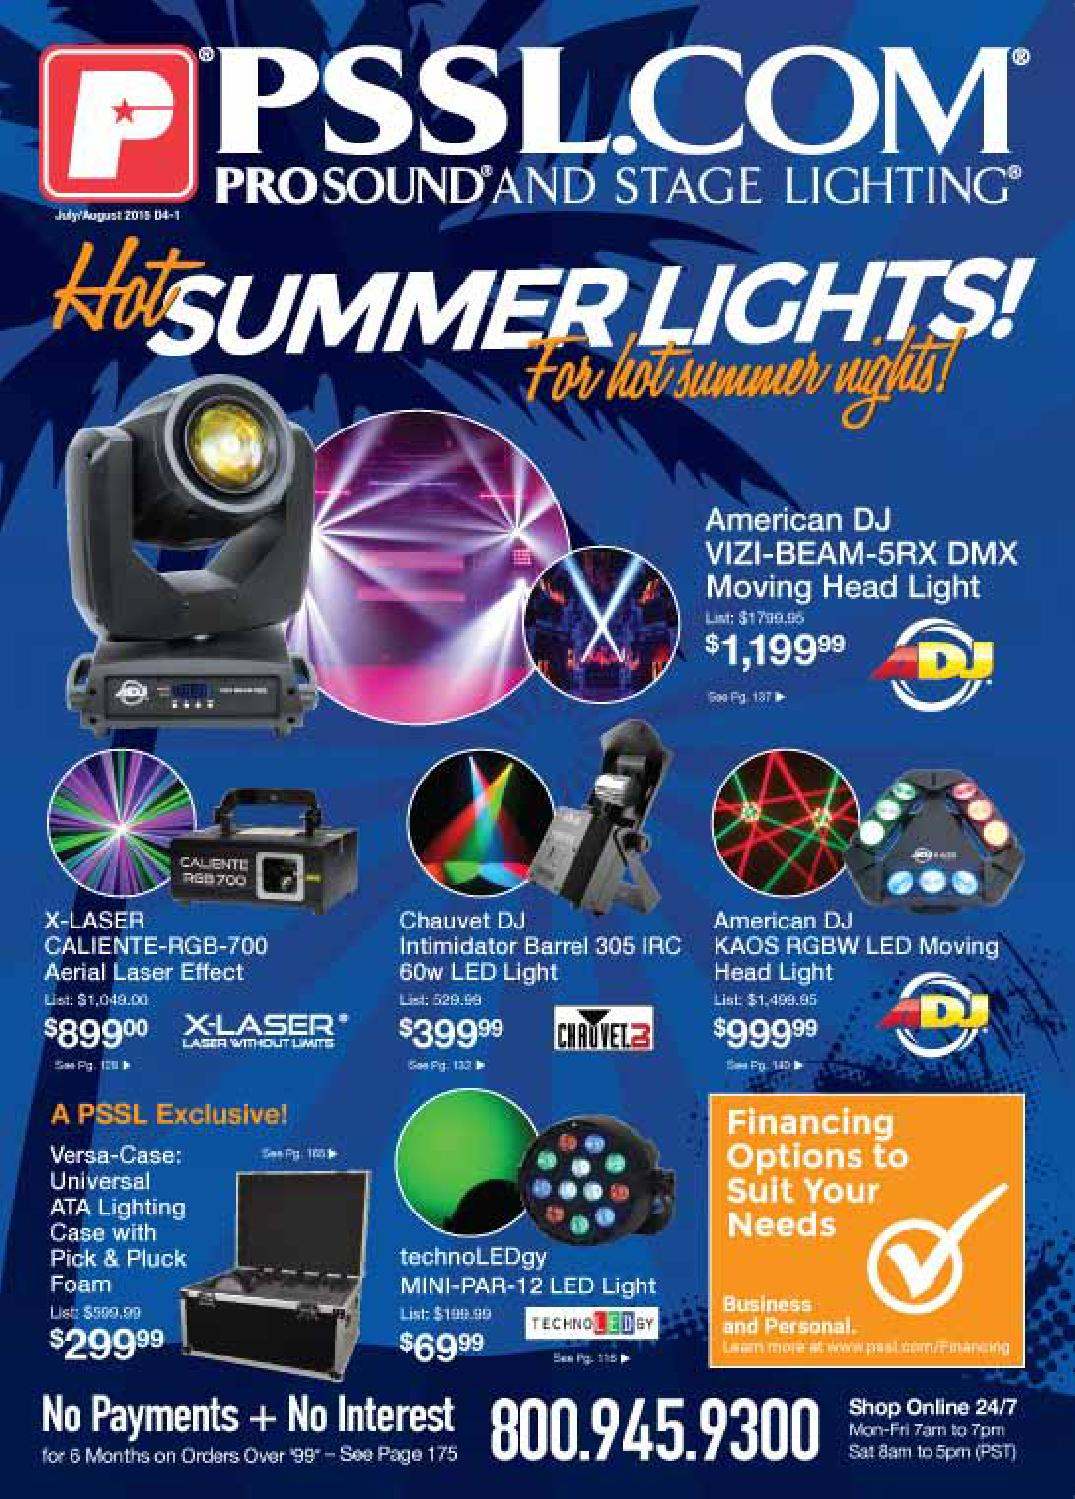 2015 julyaugust by pssl com prosound stage lighting issuu